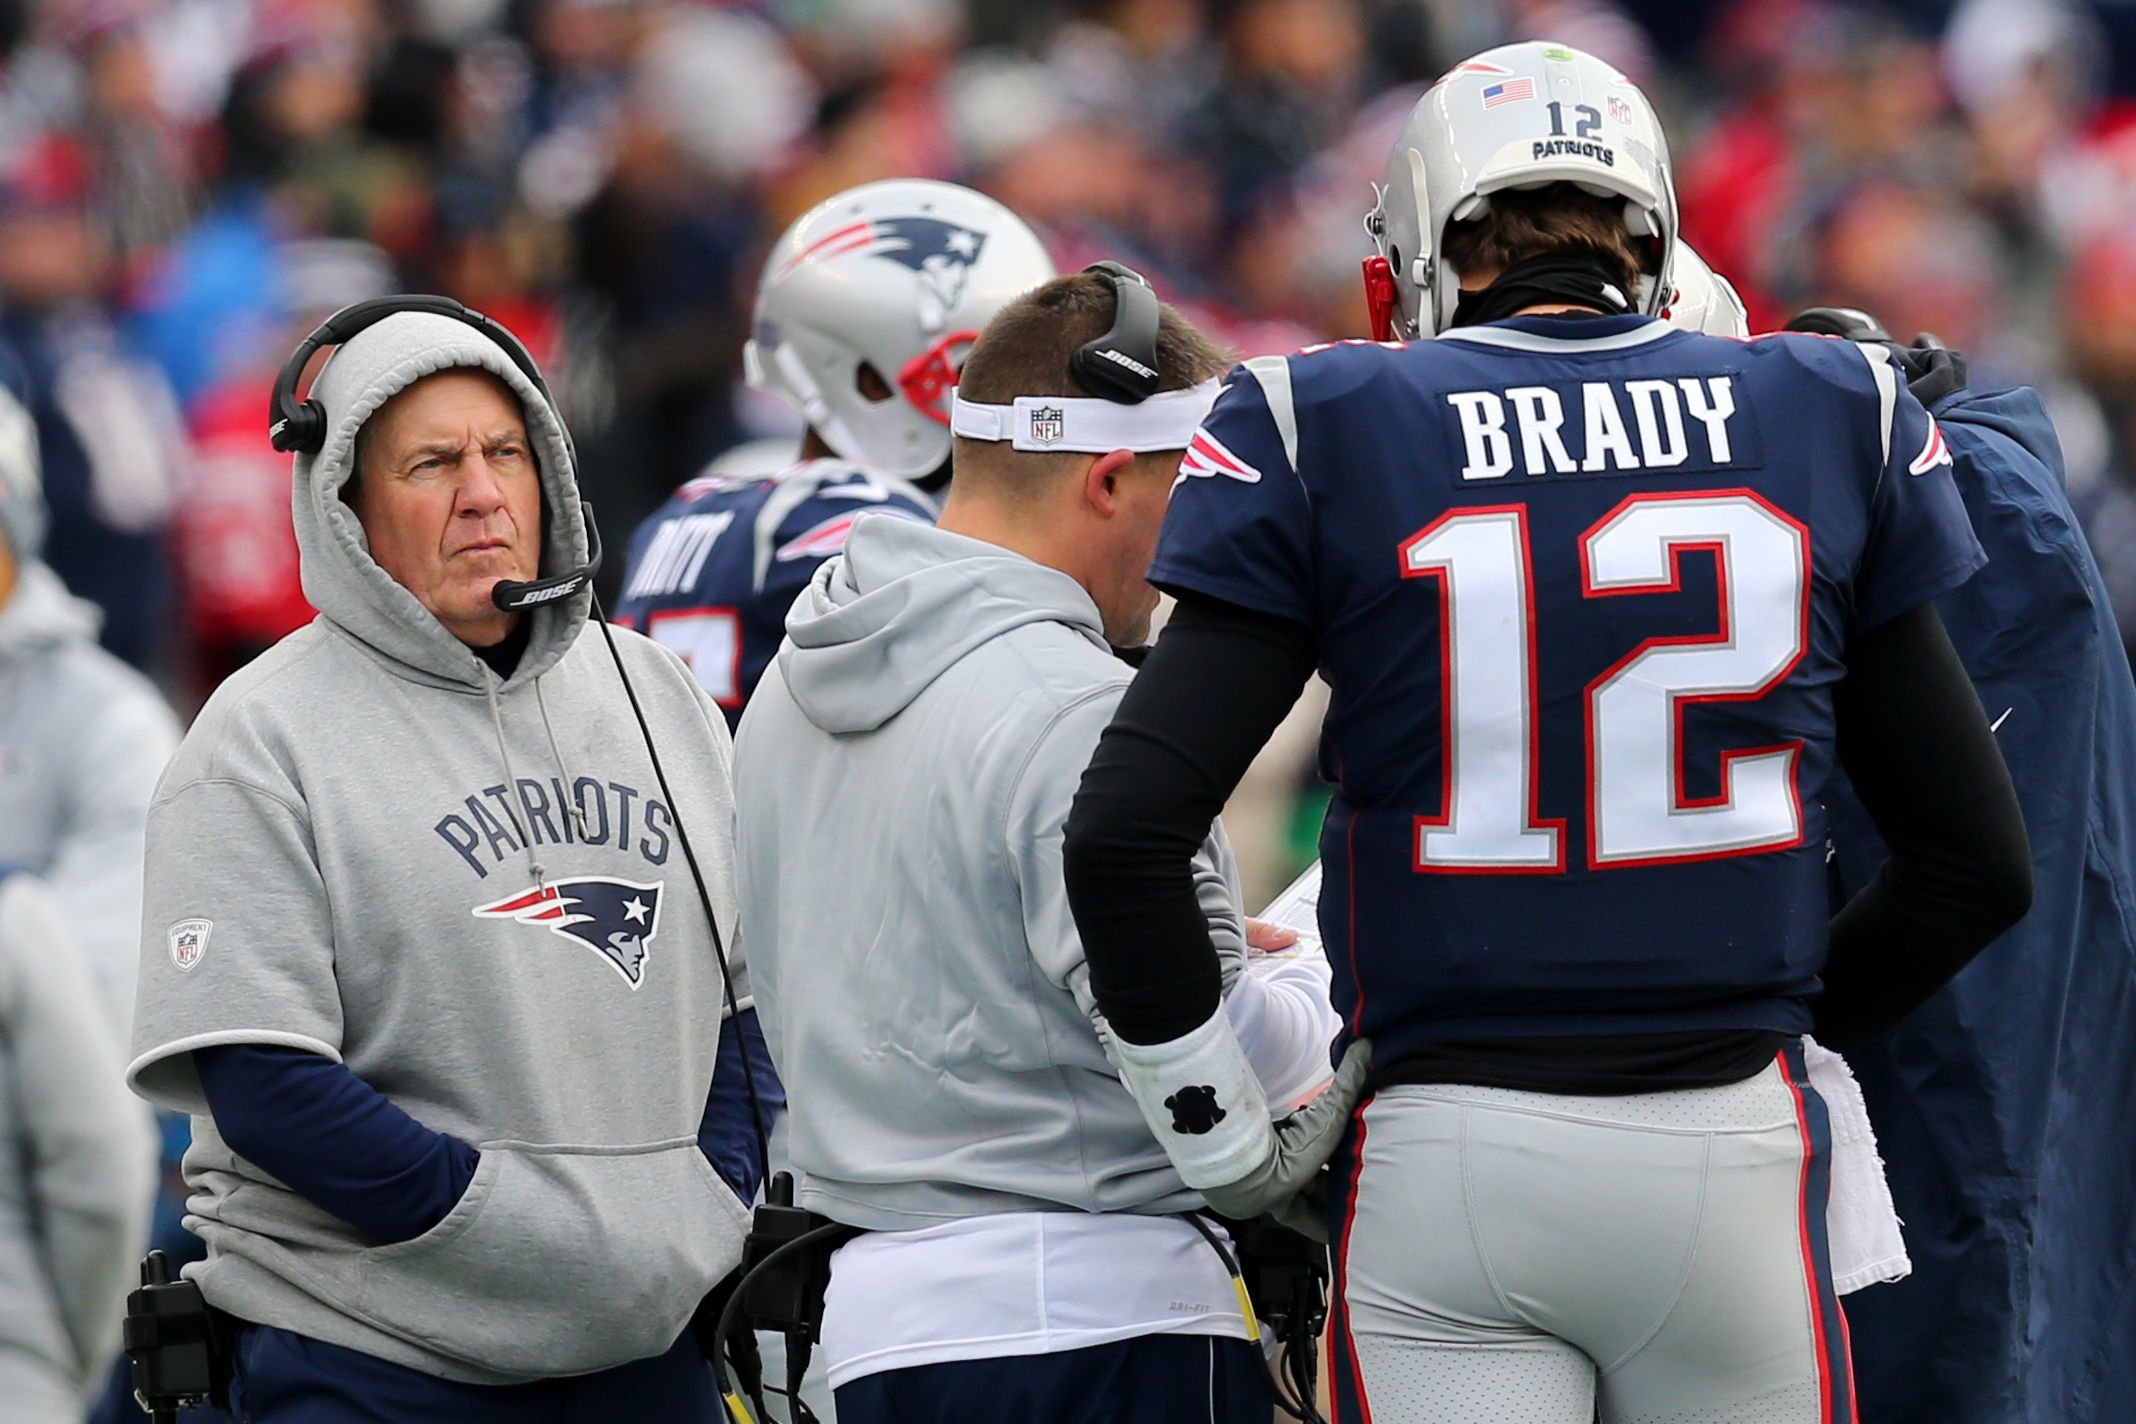 Head coach Bill Belichick of the New England Patriots and Tom Brady at Gillette Stadium, Foxboro, December 24 2017.